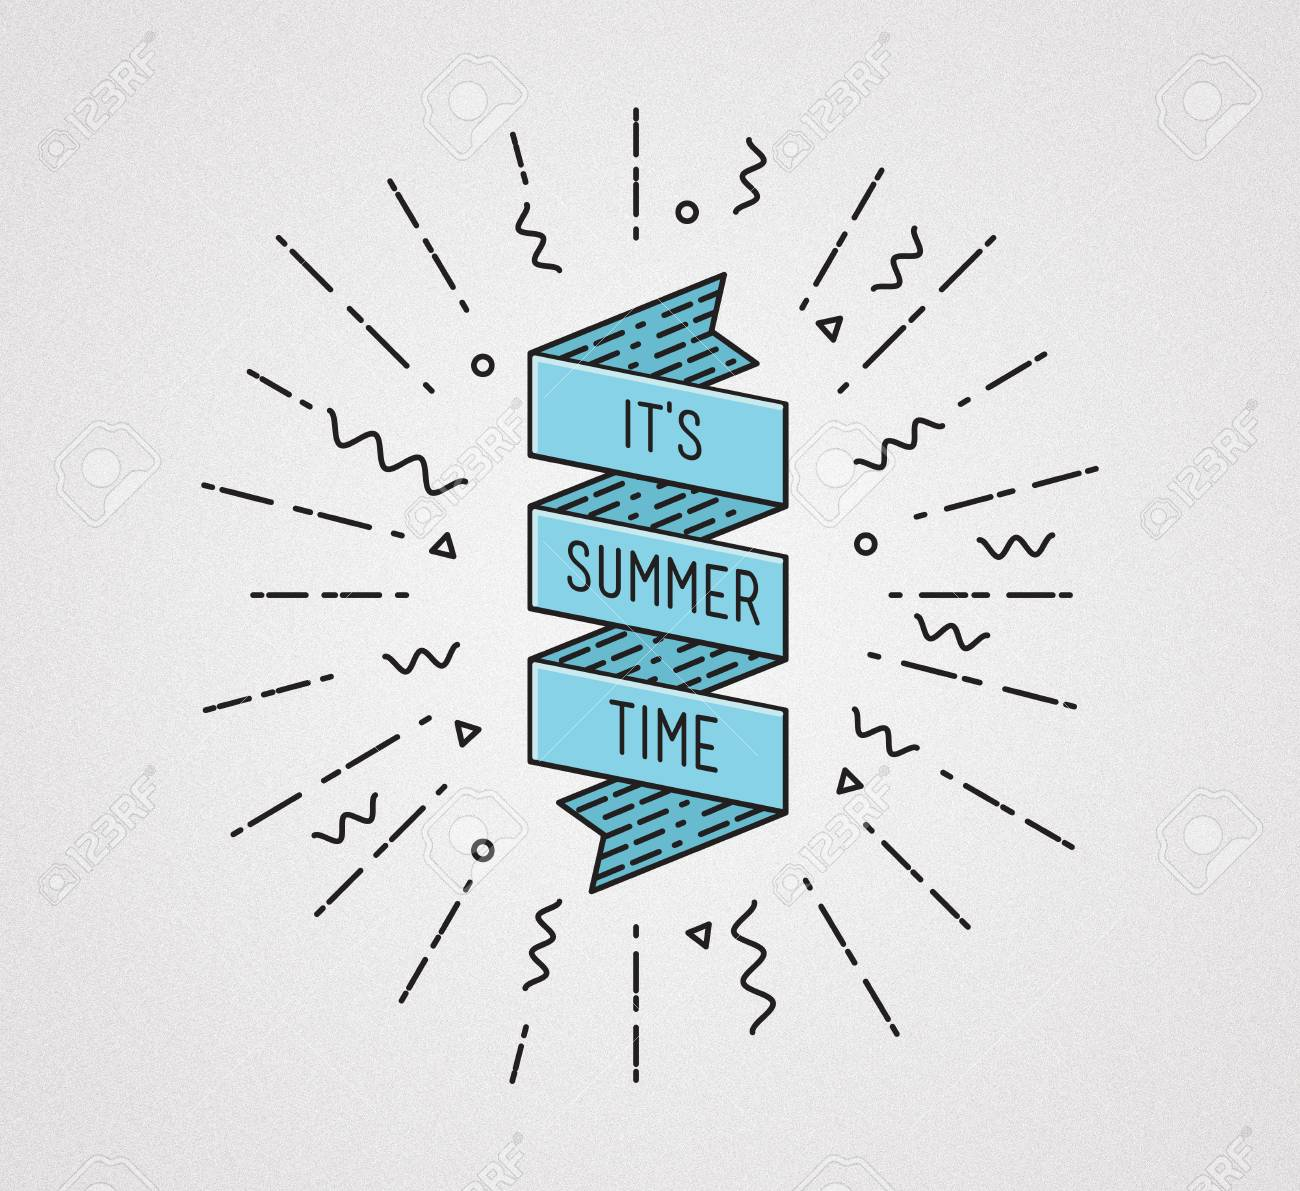 It Is Summer Time. Inspirational Illustration, Motivational Quote ...